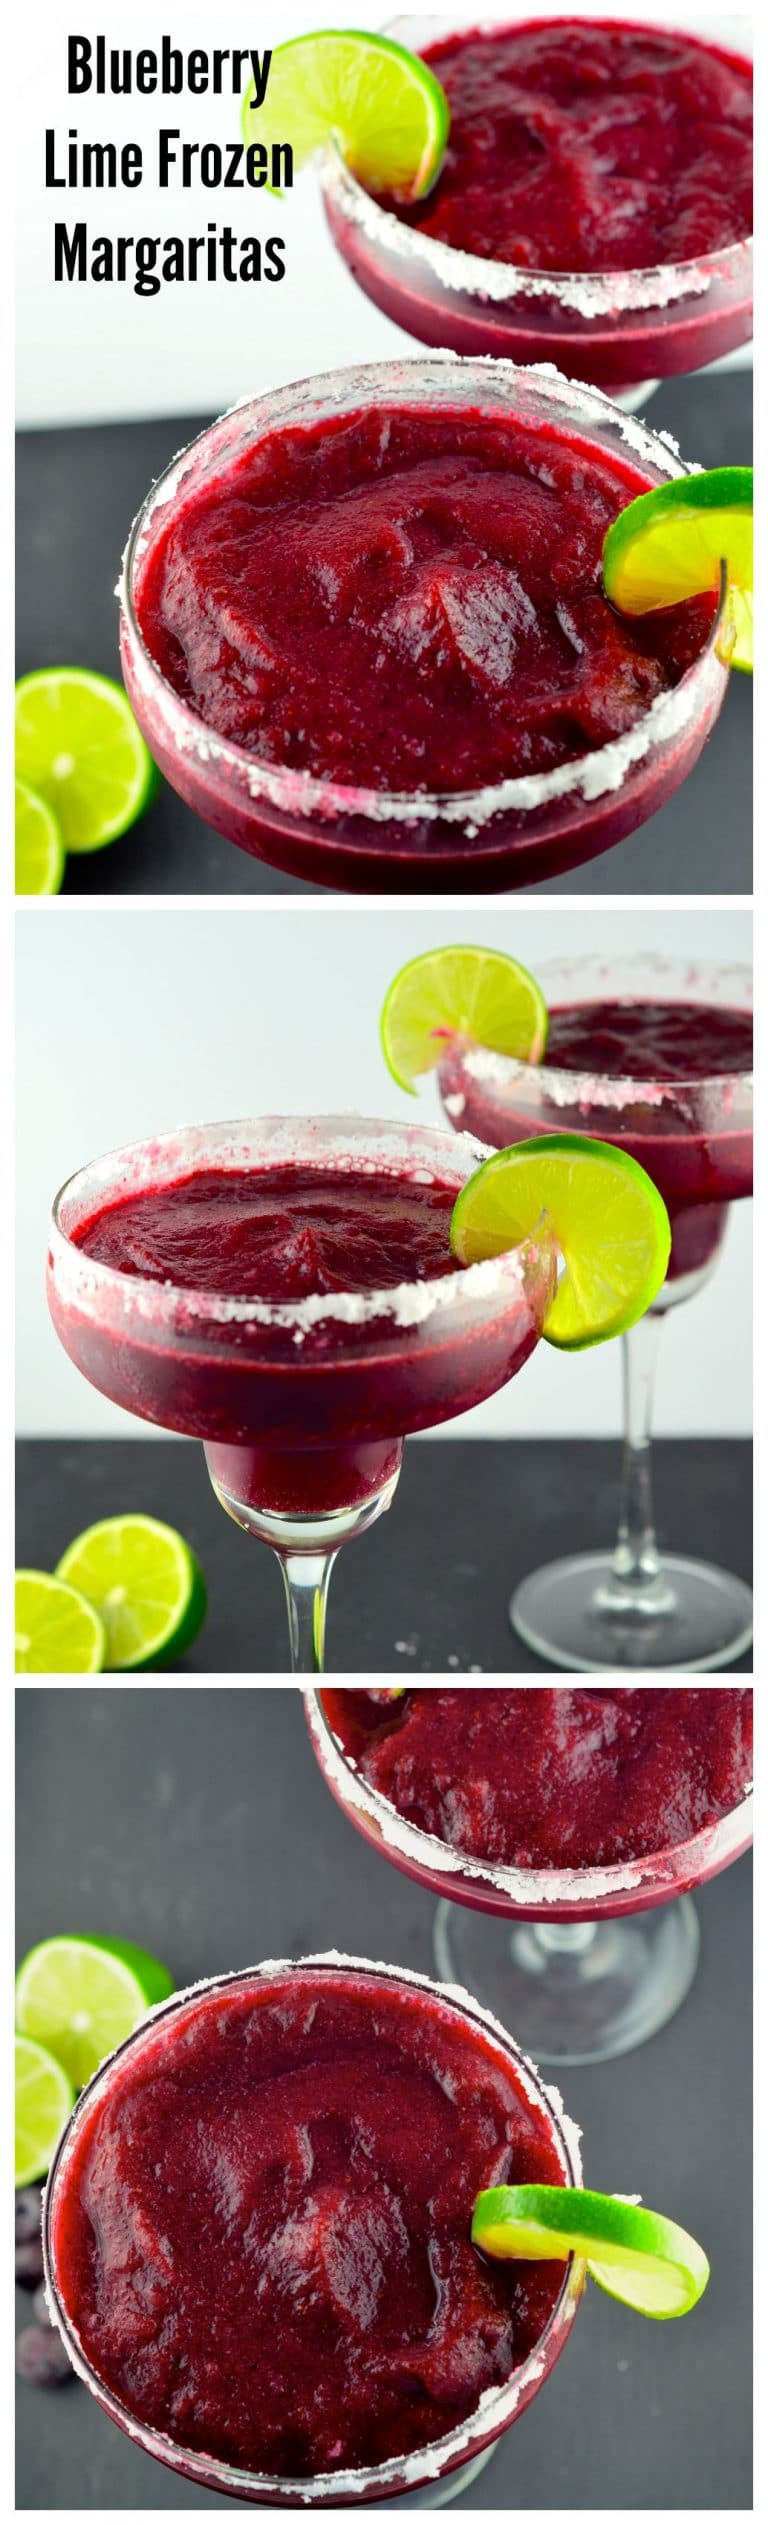 Blueberry Lime Margaritas #frozenmargaritarecipes Blueberry Lime Frozen Margaritas - May I Have That Recipe #frozenmargaritarecipes